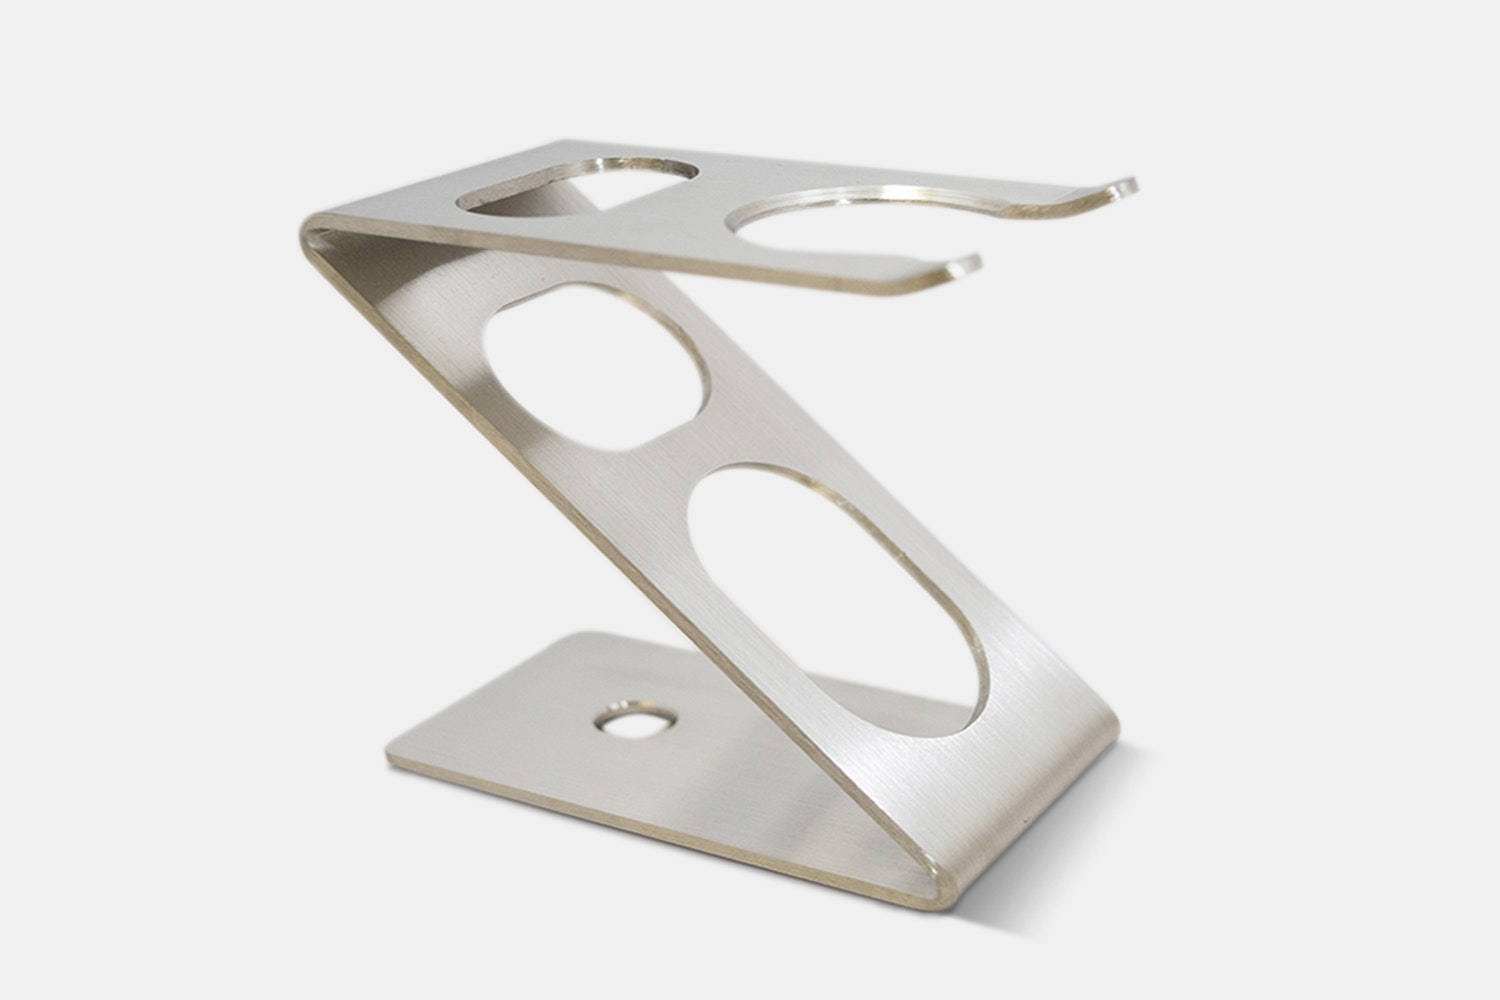 Z Brush and Razor Stand – Stainless Steel (+ $21)